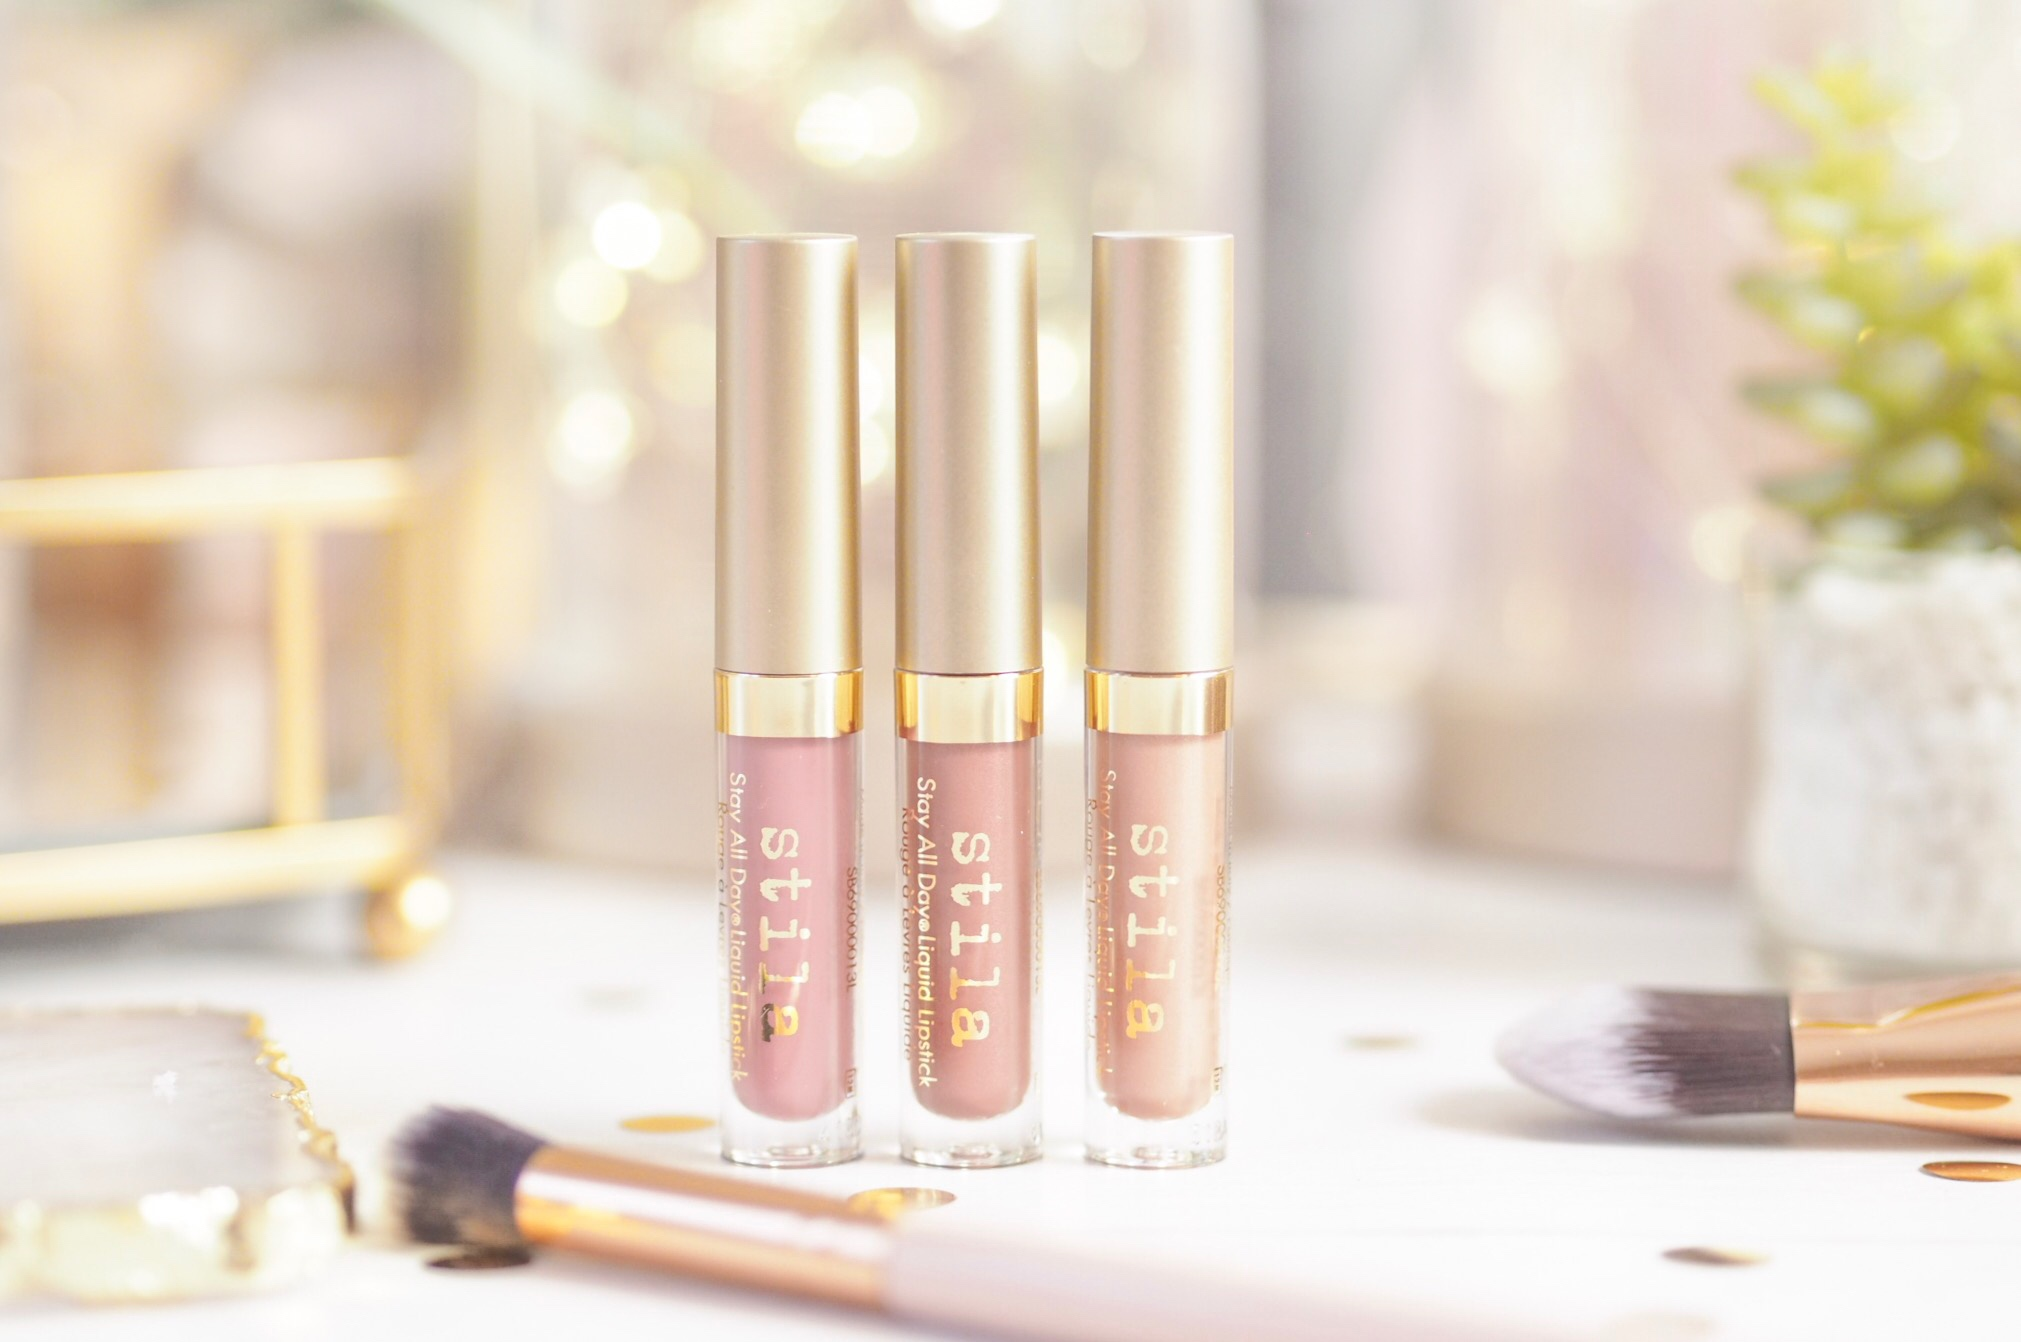 Stila Stay All Day Liquid Lipstick Set in Nude Attitude